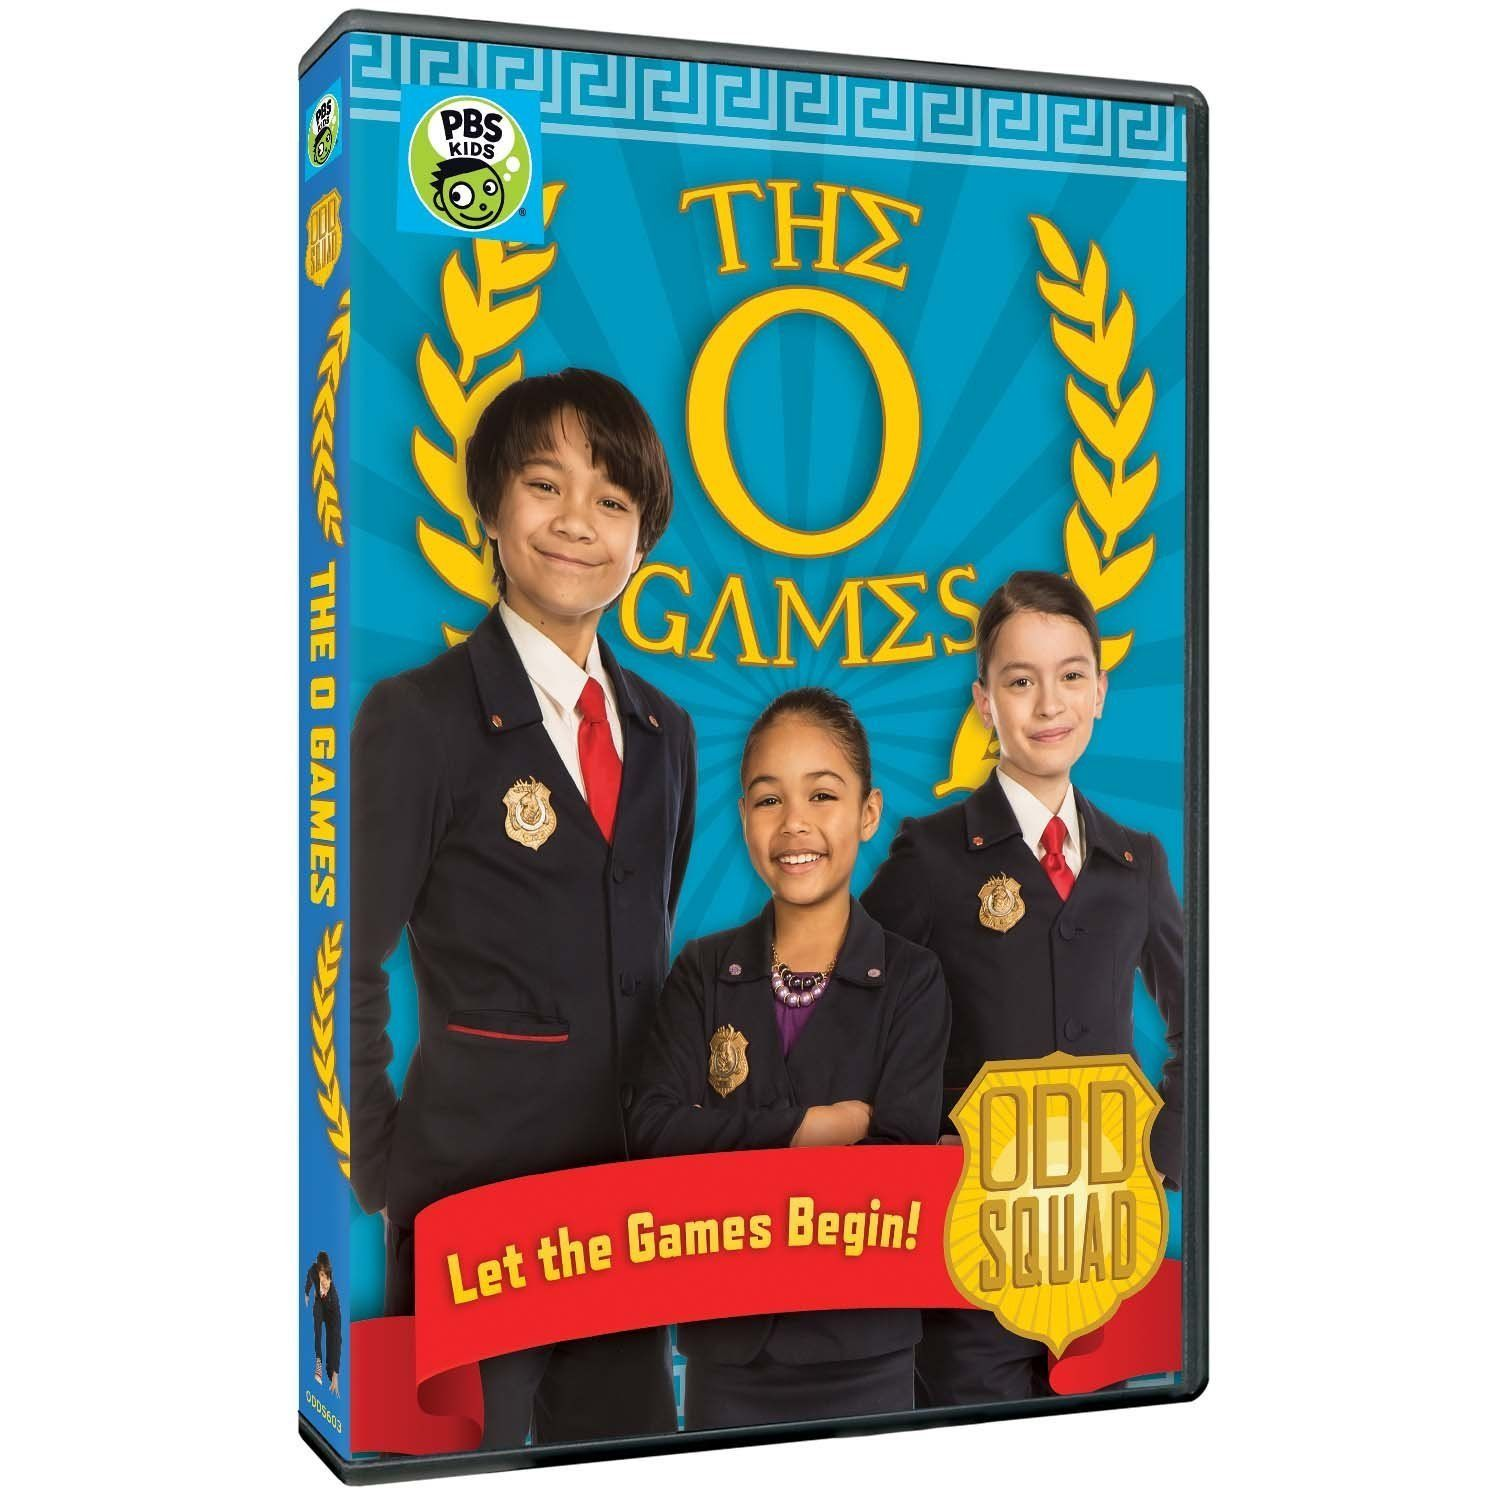 Odd Squad The O Games on DVD Today (With images) Pbs